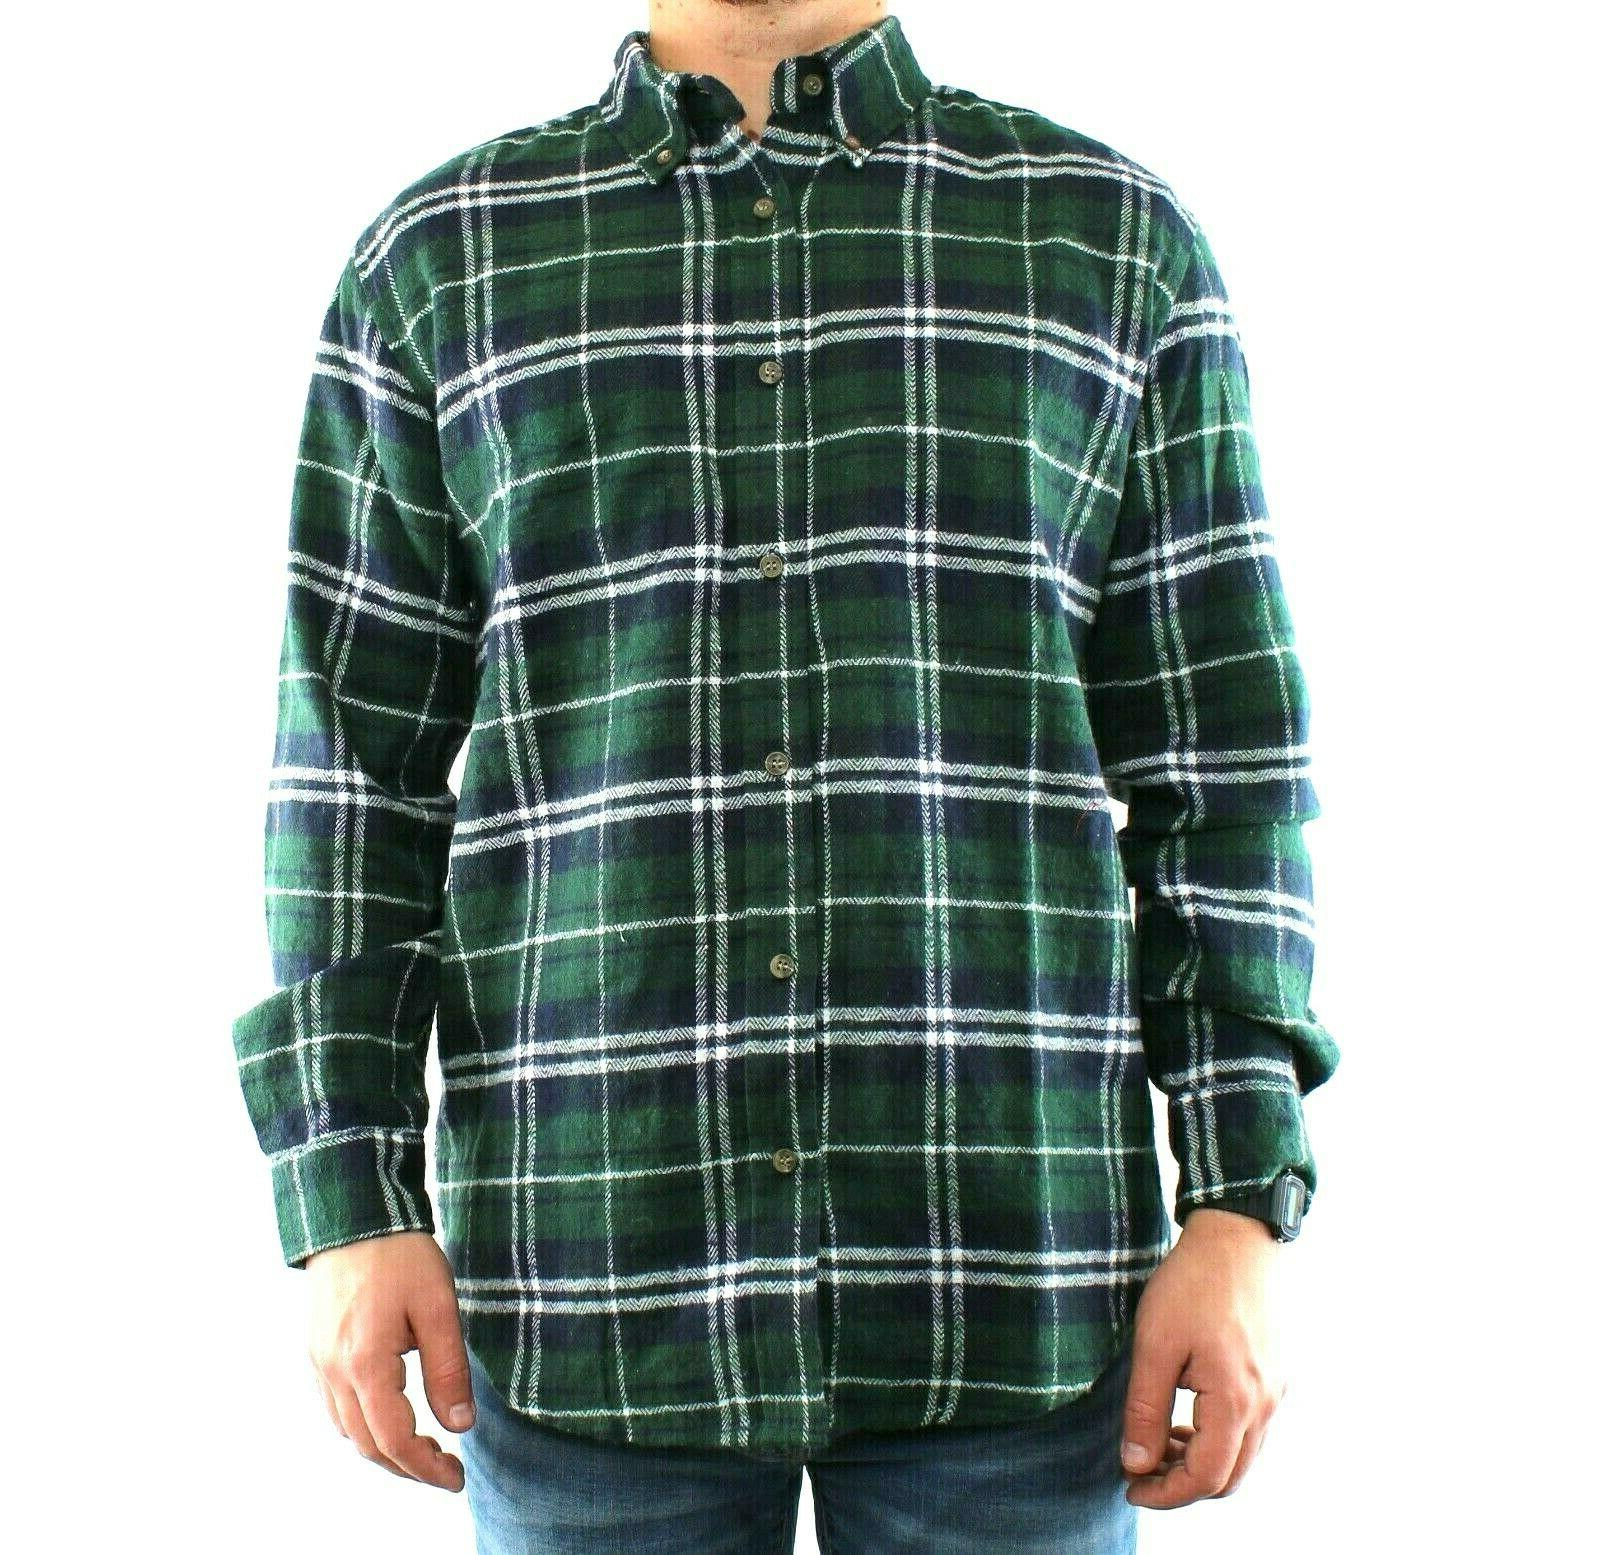 St. Shirt Men's Plaid Sleeve Down